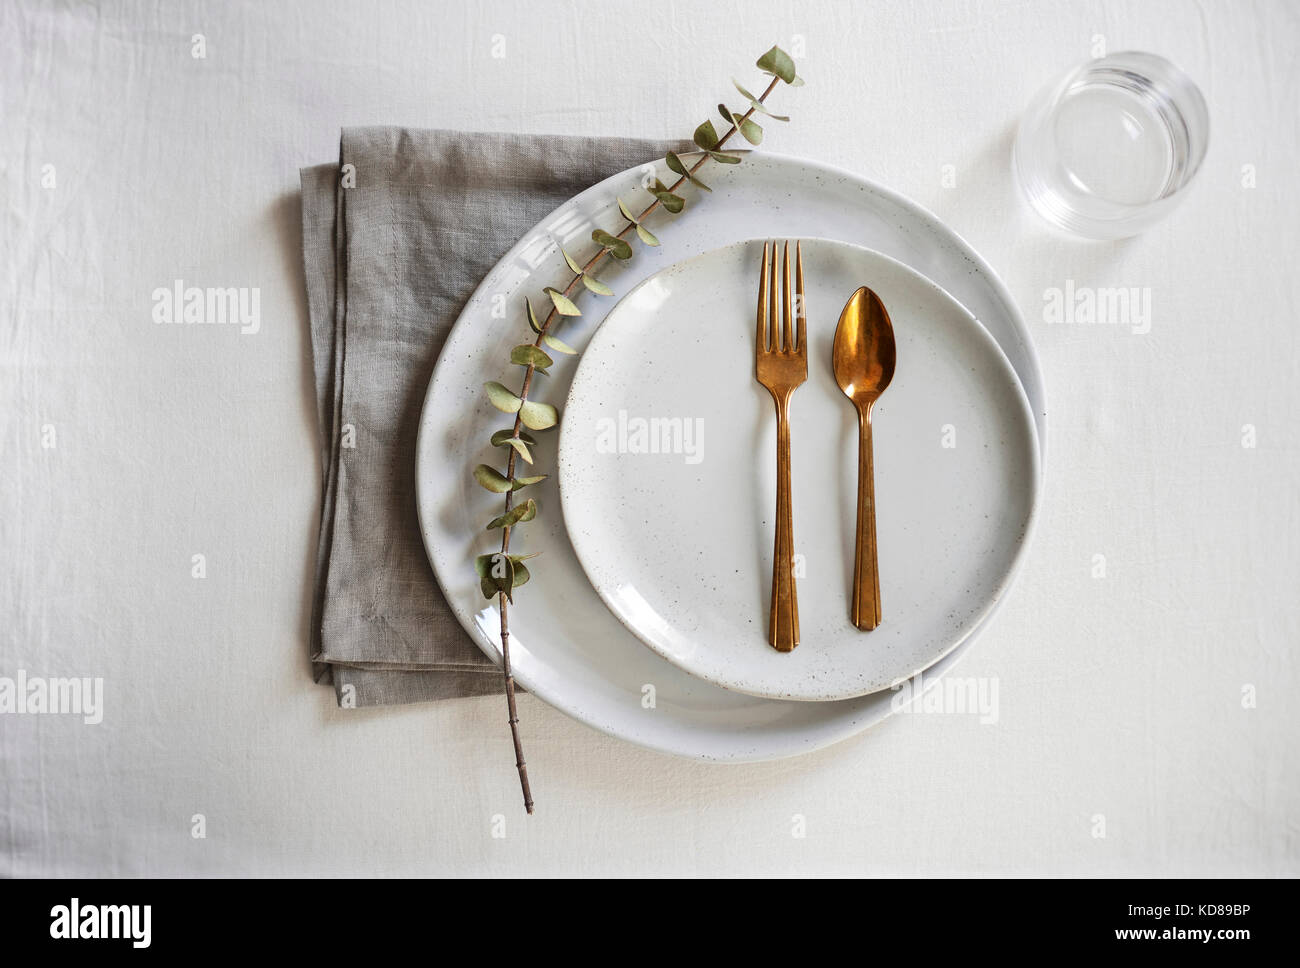 A beautiful, minimal table setting with organic, handmade gray plates, gold flatware and a natural linen. - Stock Image